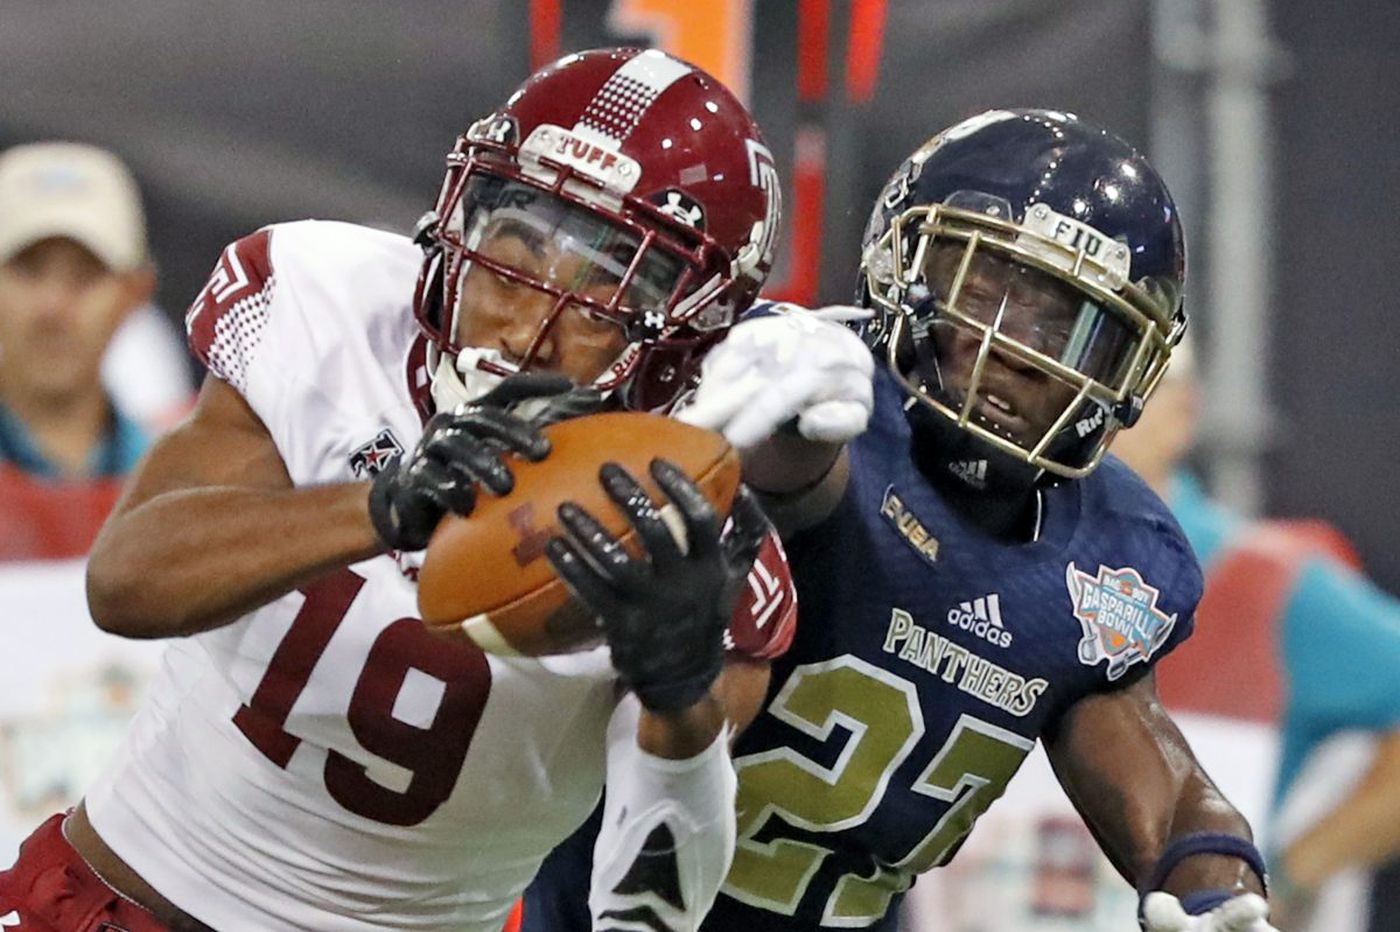 Temple beats Florida International in Gasparilla Bowl, gets first bowl win since 2011